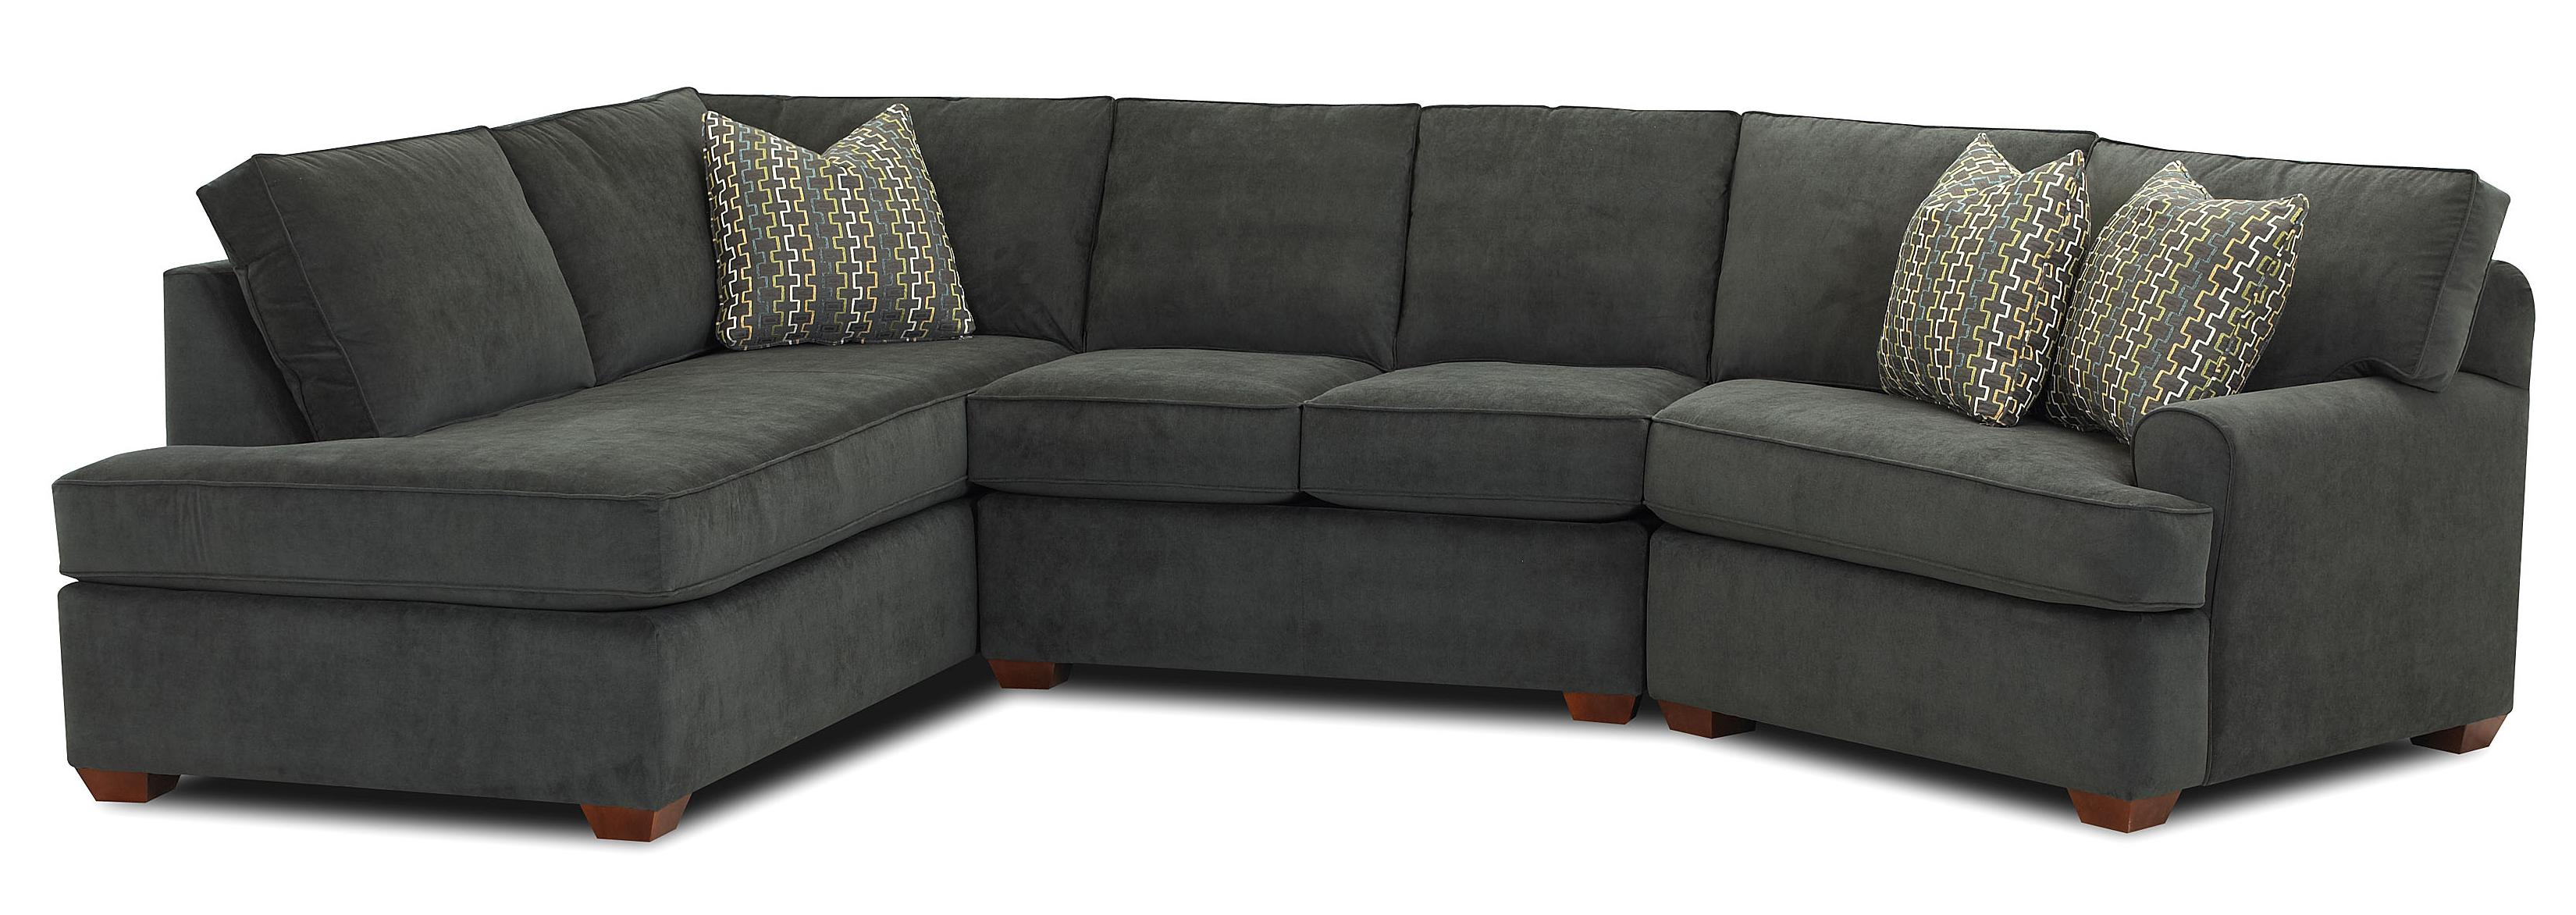 Ottoman Sectional Couch Large